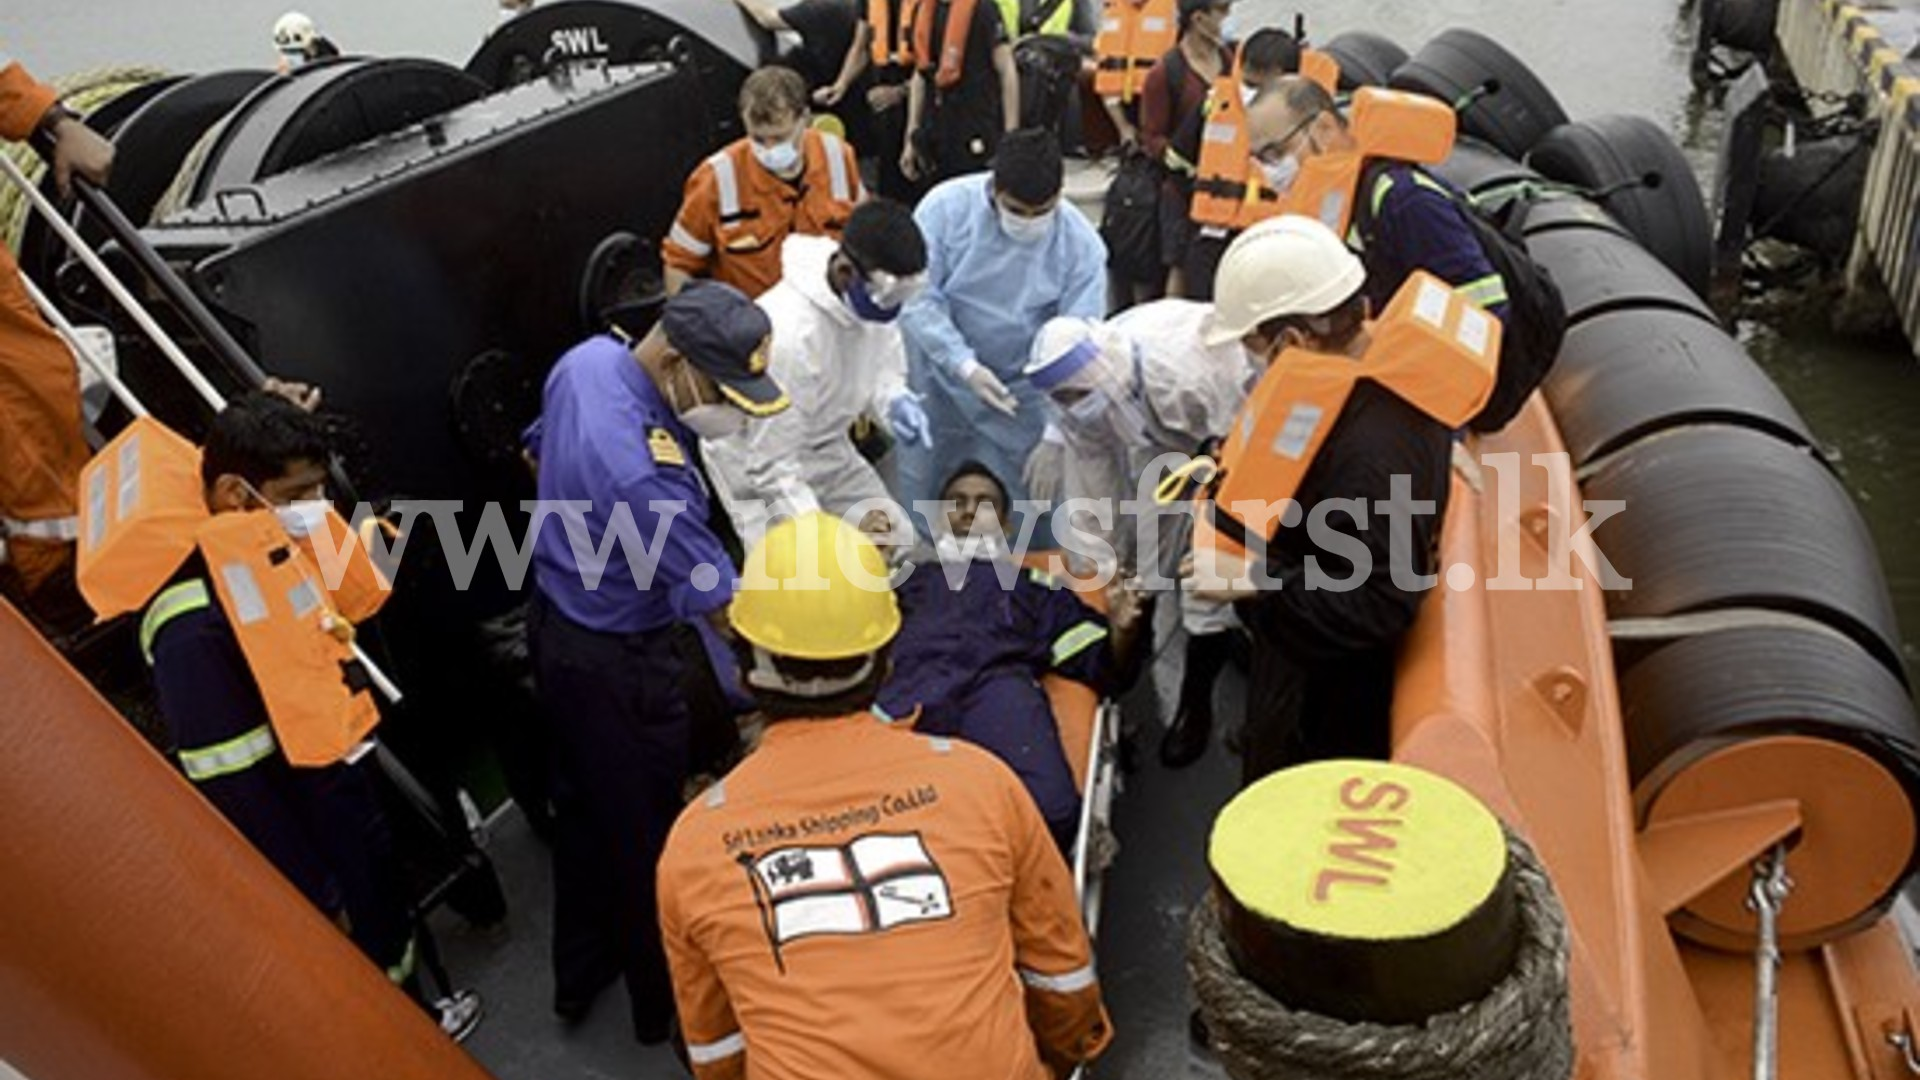 Indian crew member rescued from blazing ship tests positive for COVID-19